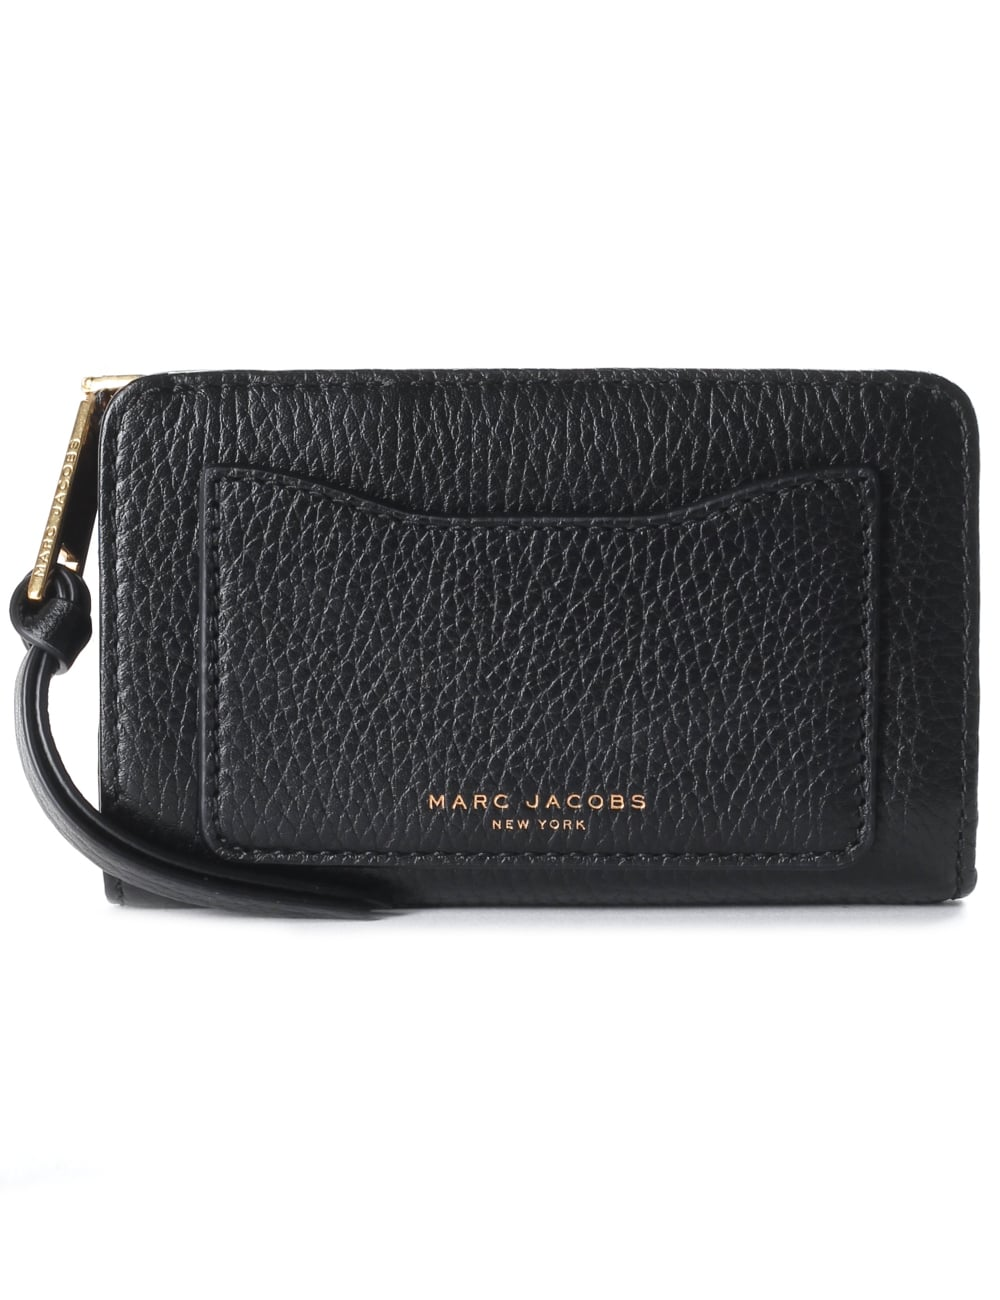 5314dffbb2 Marc Jacobs Women's Recruit Compact Wallet